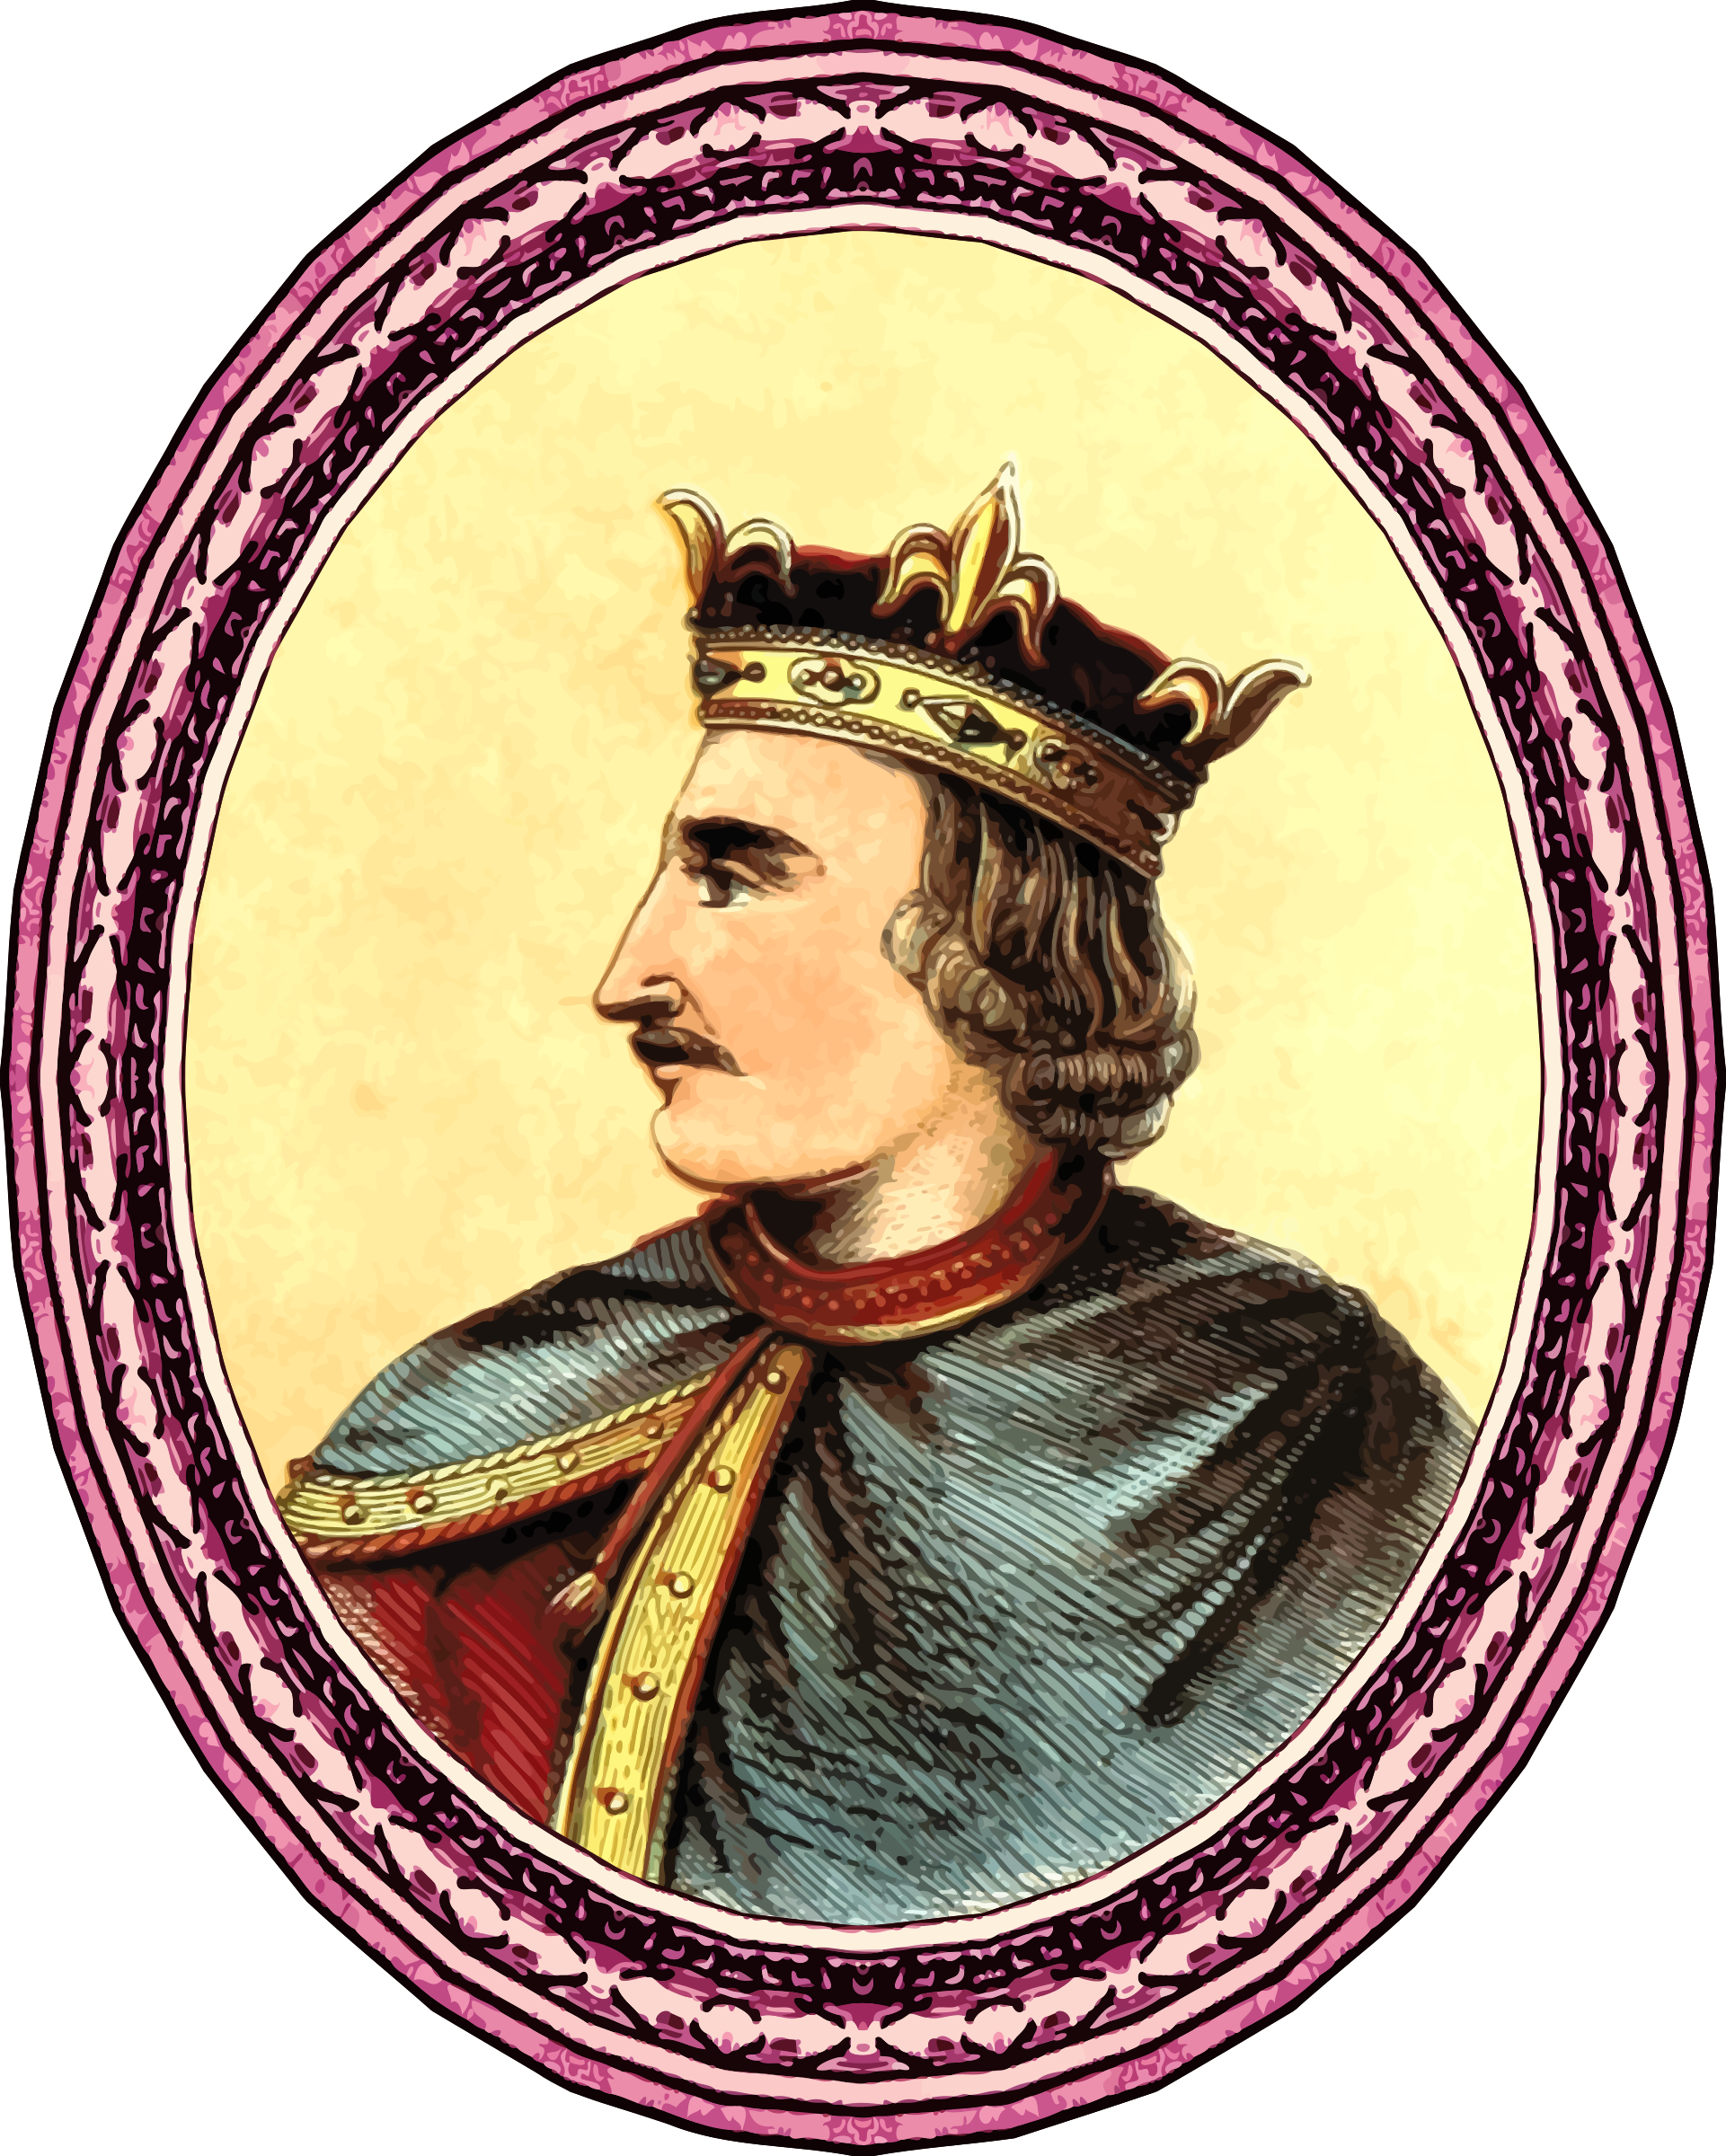 King Henry I (framed) by Firkin